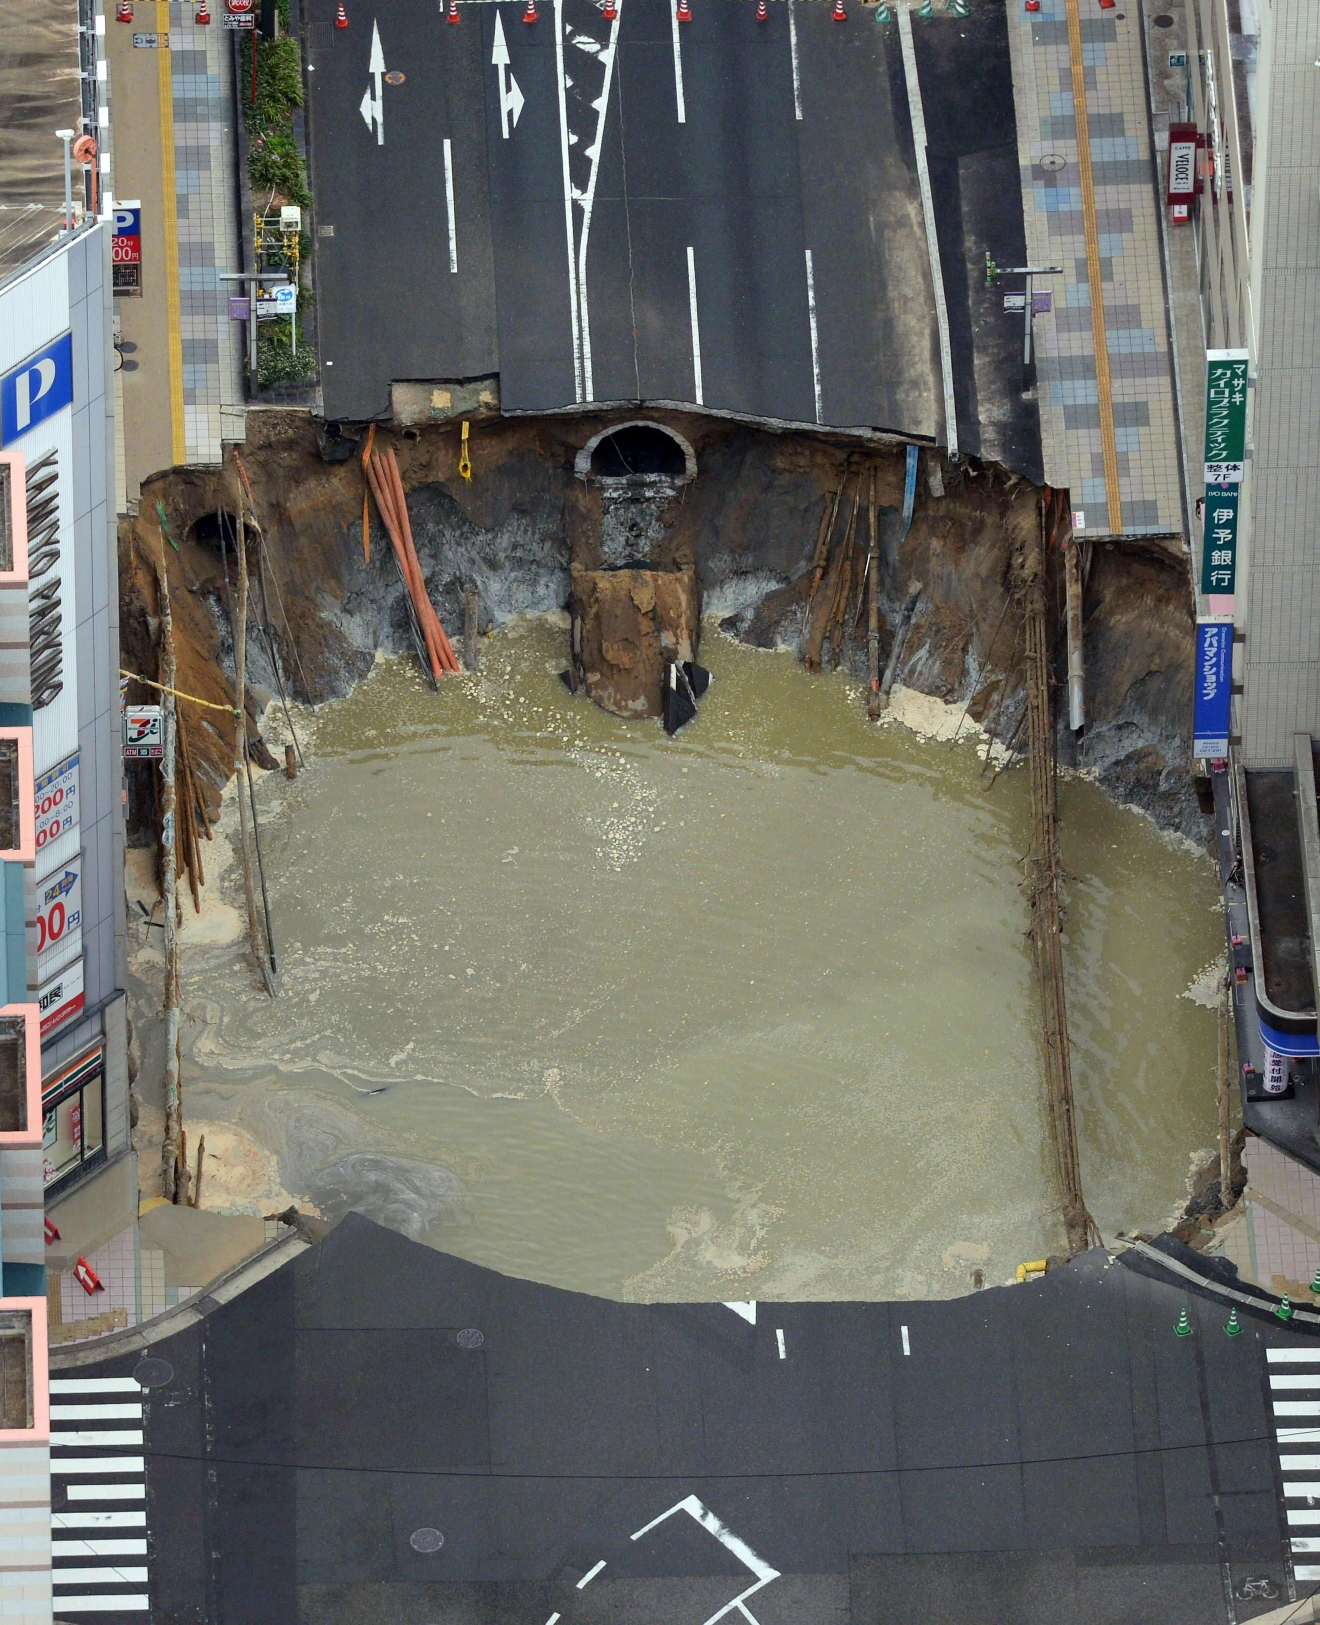 A massive shinkhole is created in the middle of the business district in Fukuoka, southern Japan Tuesday, Nov. 8, 2016. Parts of a main street have collapsed in the city, creating a huge sinkhole and cutting off power, water and gas supplies to parts of the city. Authorities said no injuries were reported from Tuesday's pre-sunrise collapse in downtown Fukuoka. (Kyodo News via AP)